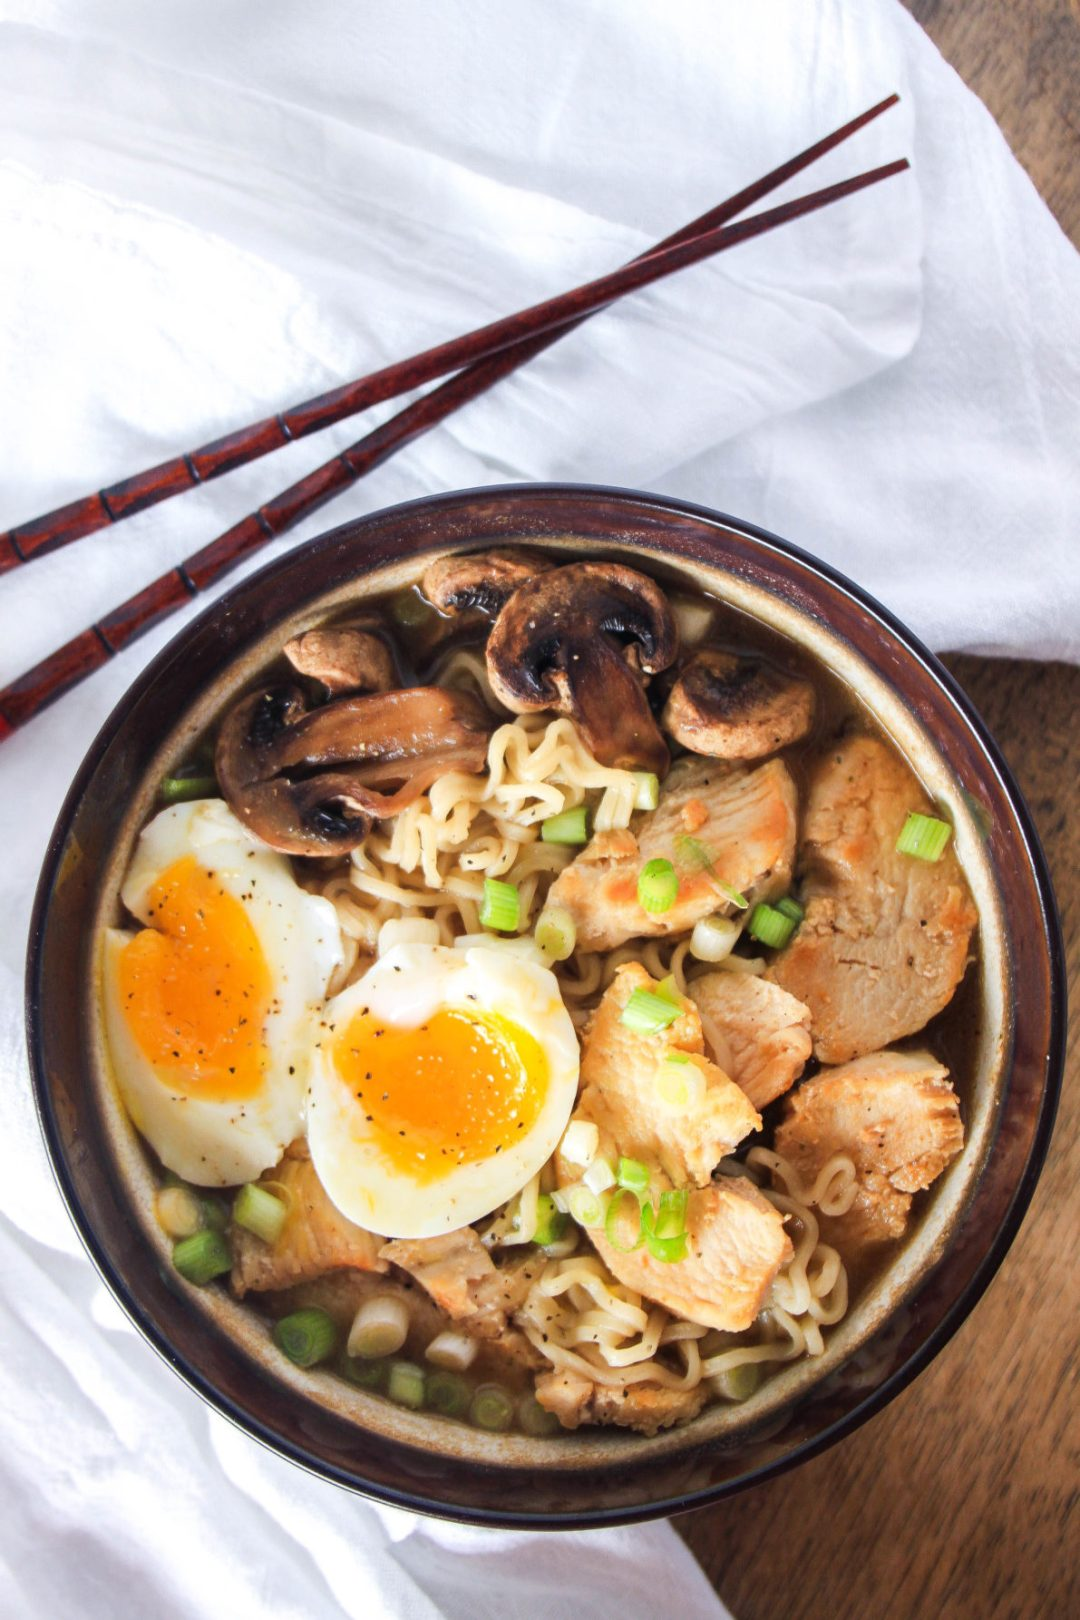 Never settle for boring ramen ever again. Adding a few simple ingredients: onions, egg, shitake, and chicken, will instantly up your ramen game.